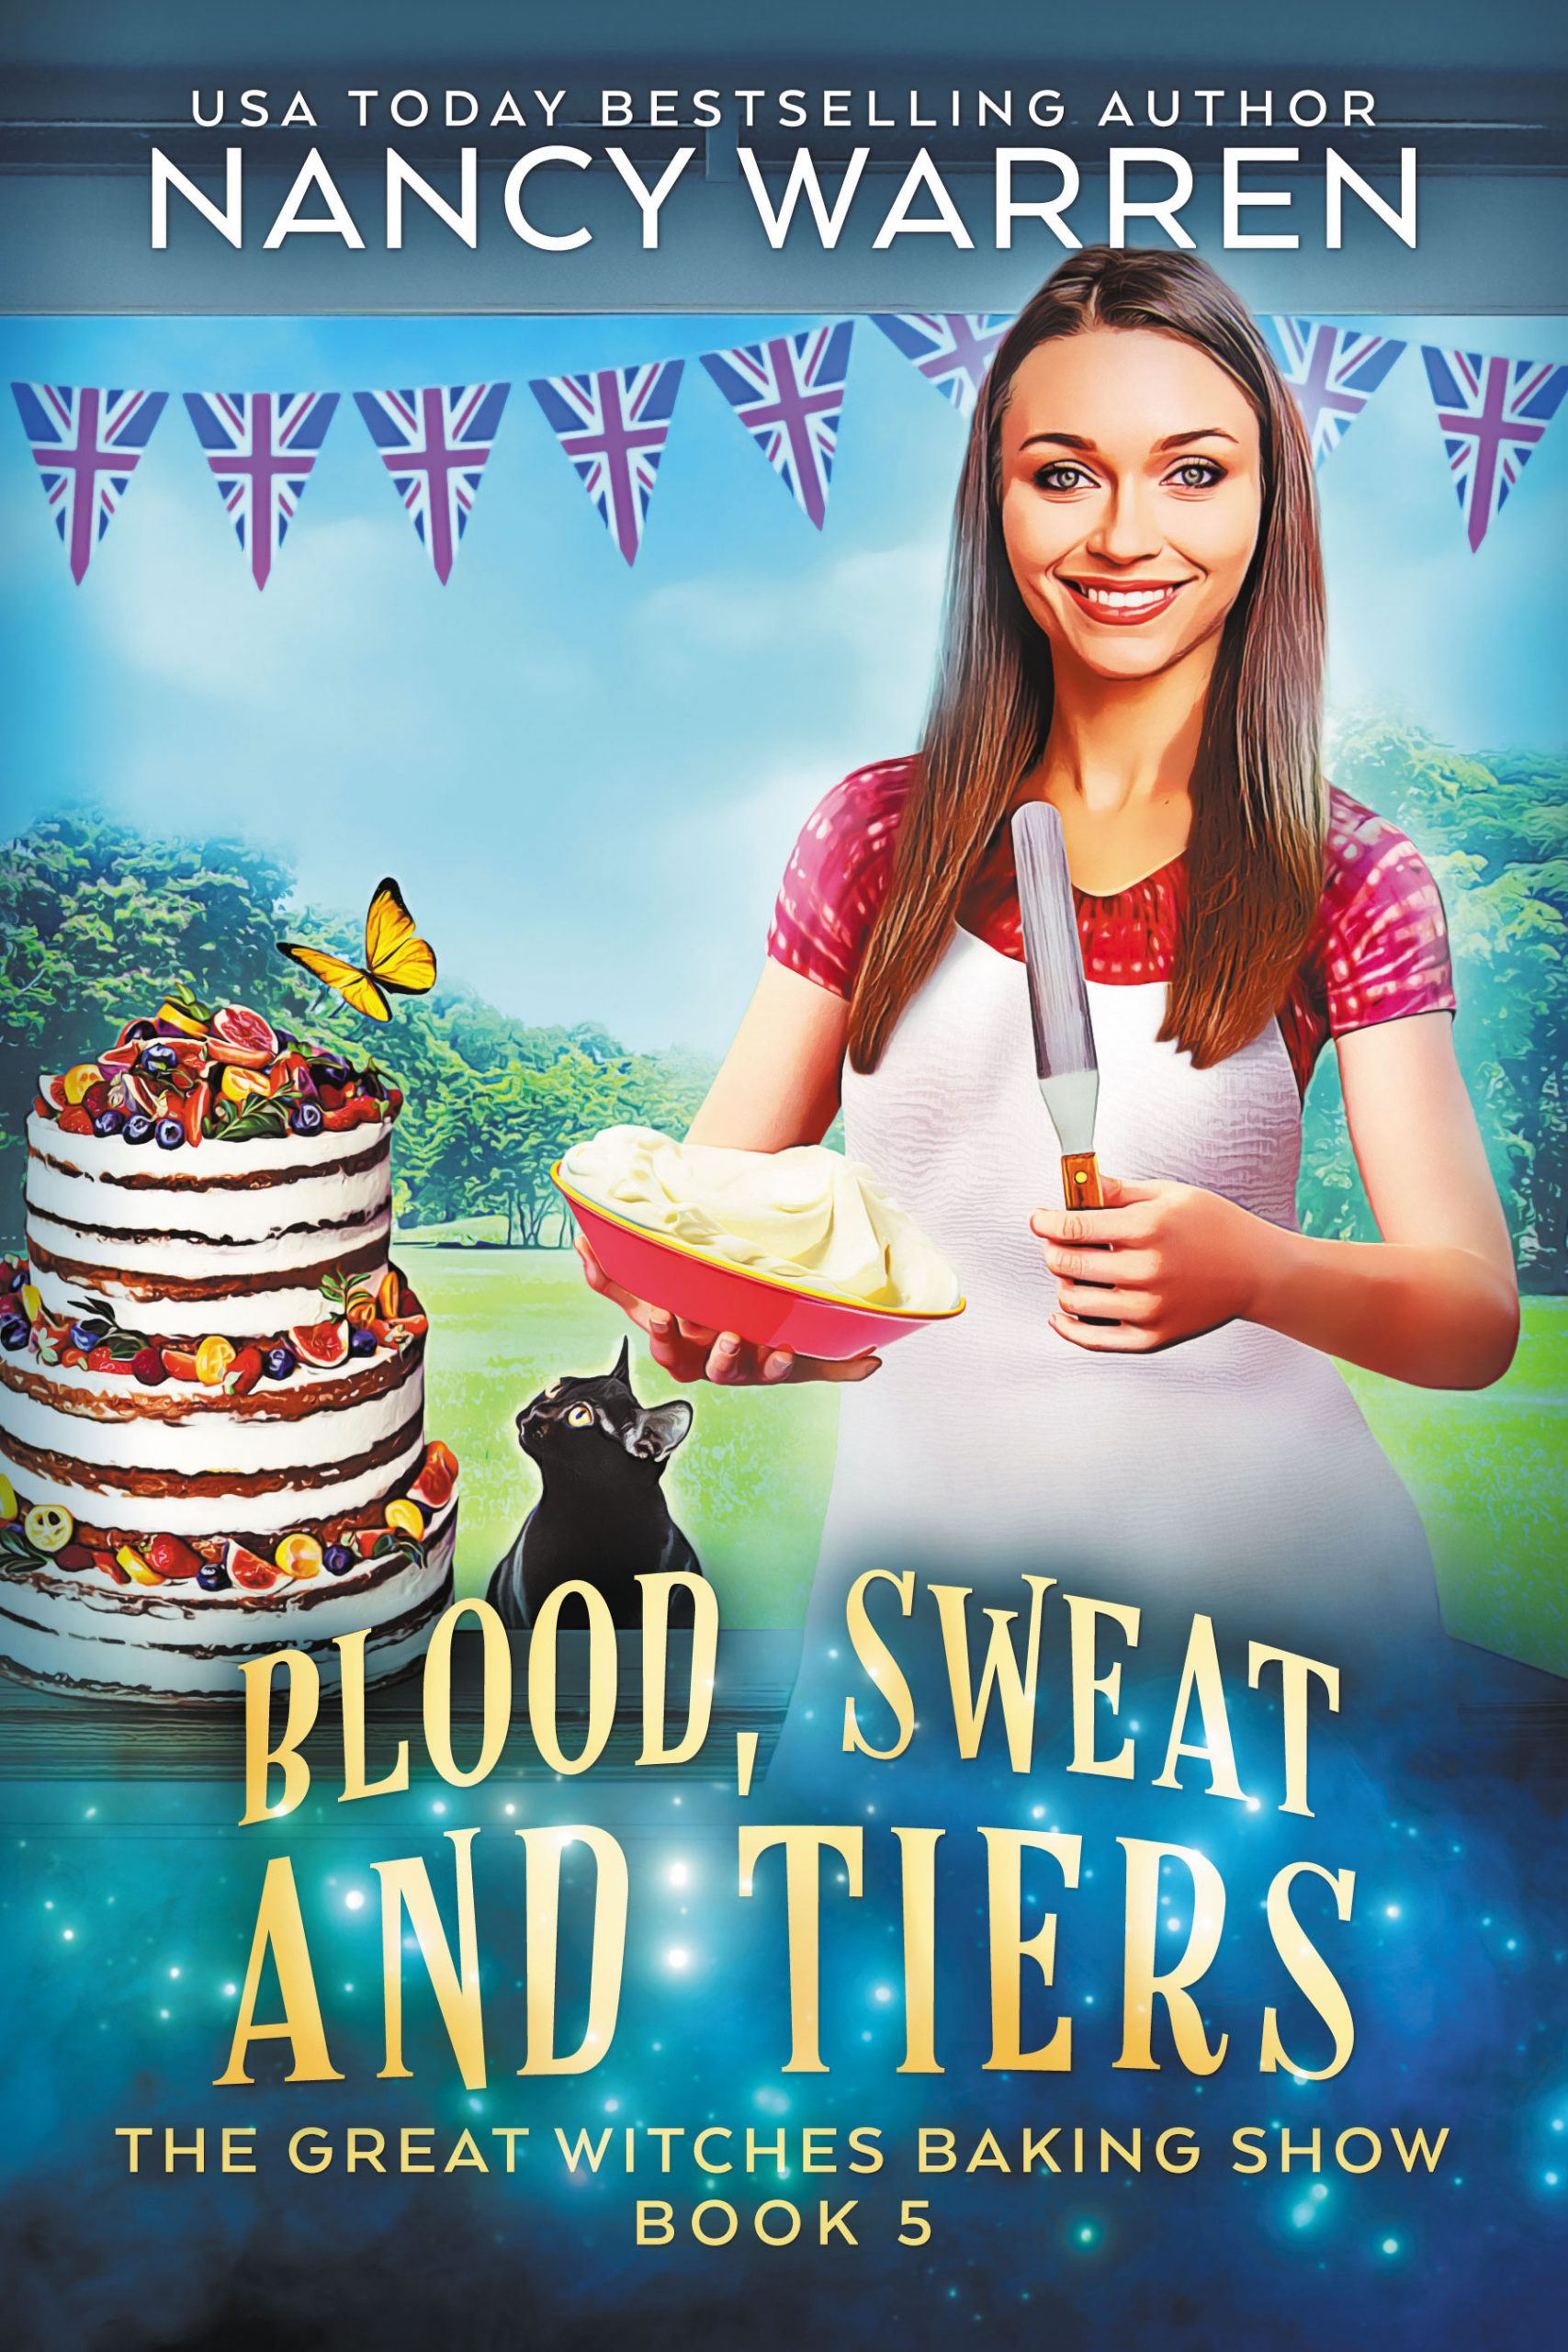 Blood, Sweat and Tiers (The Great Witches Baking Show Book 5)